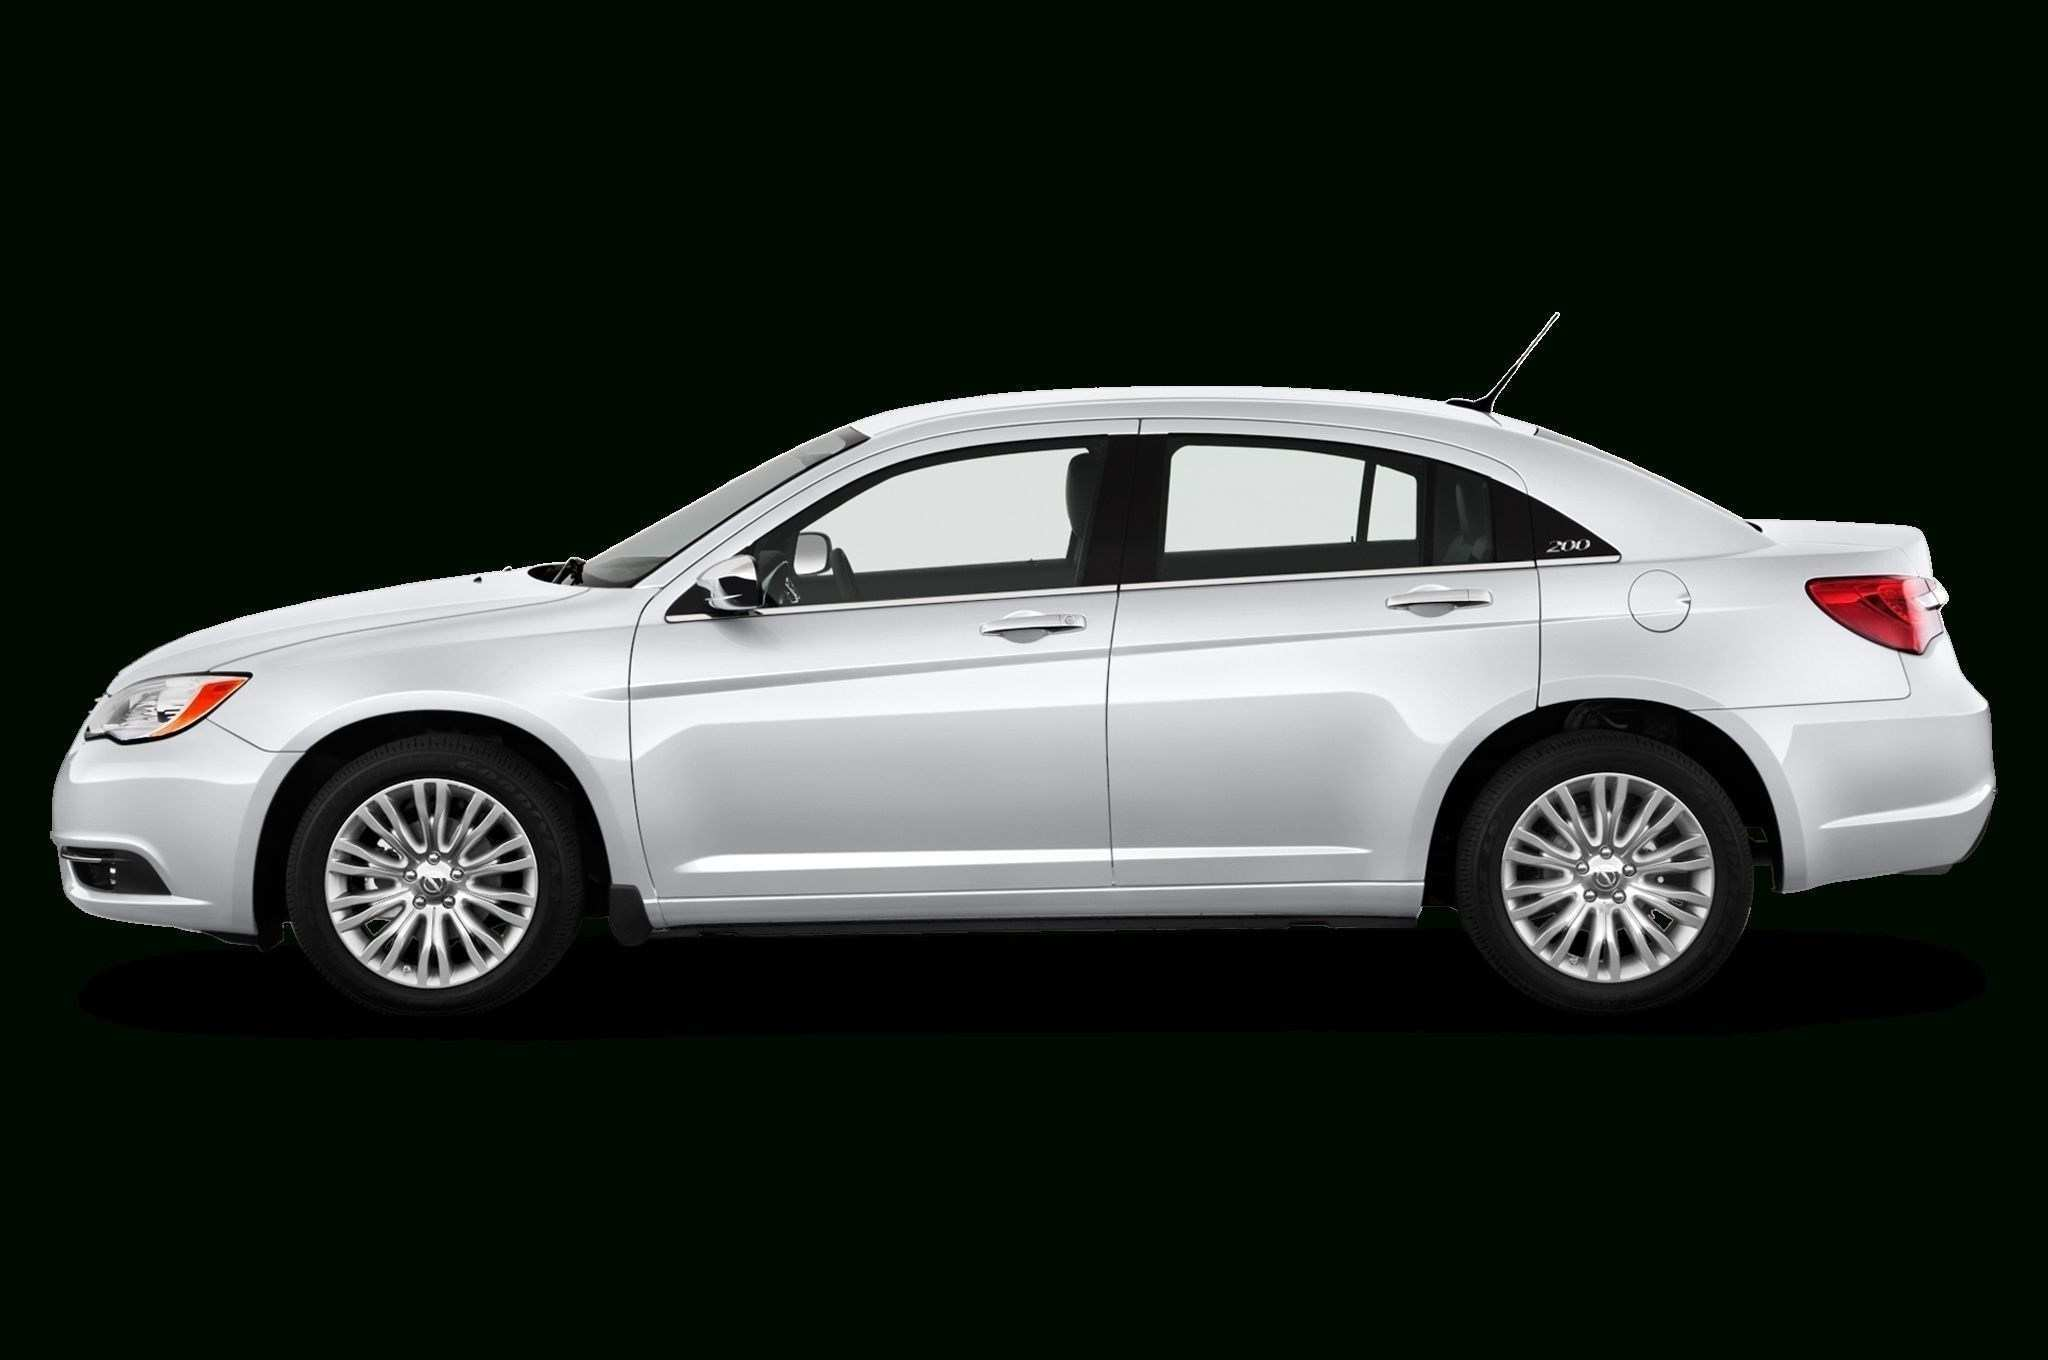 97 The Best 2020 Chrysler 200 Research New